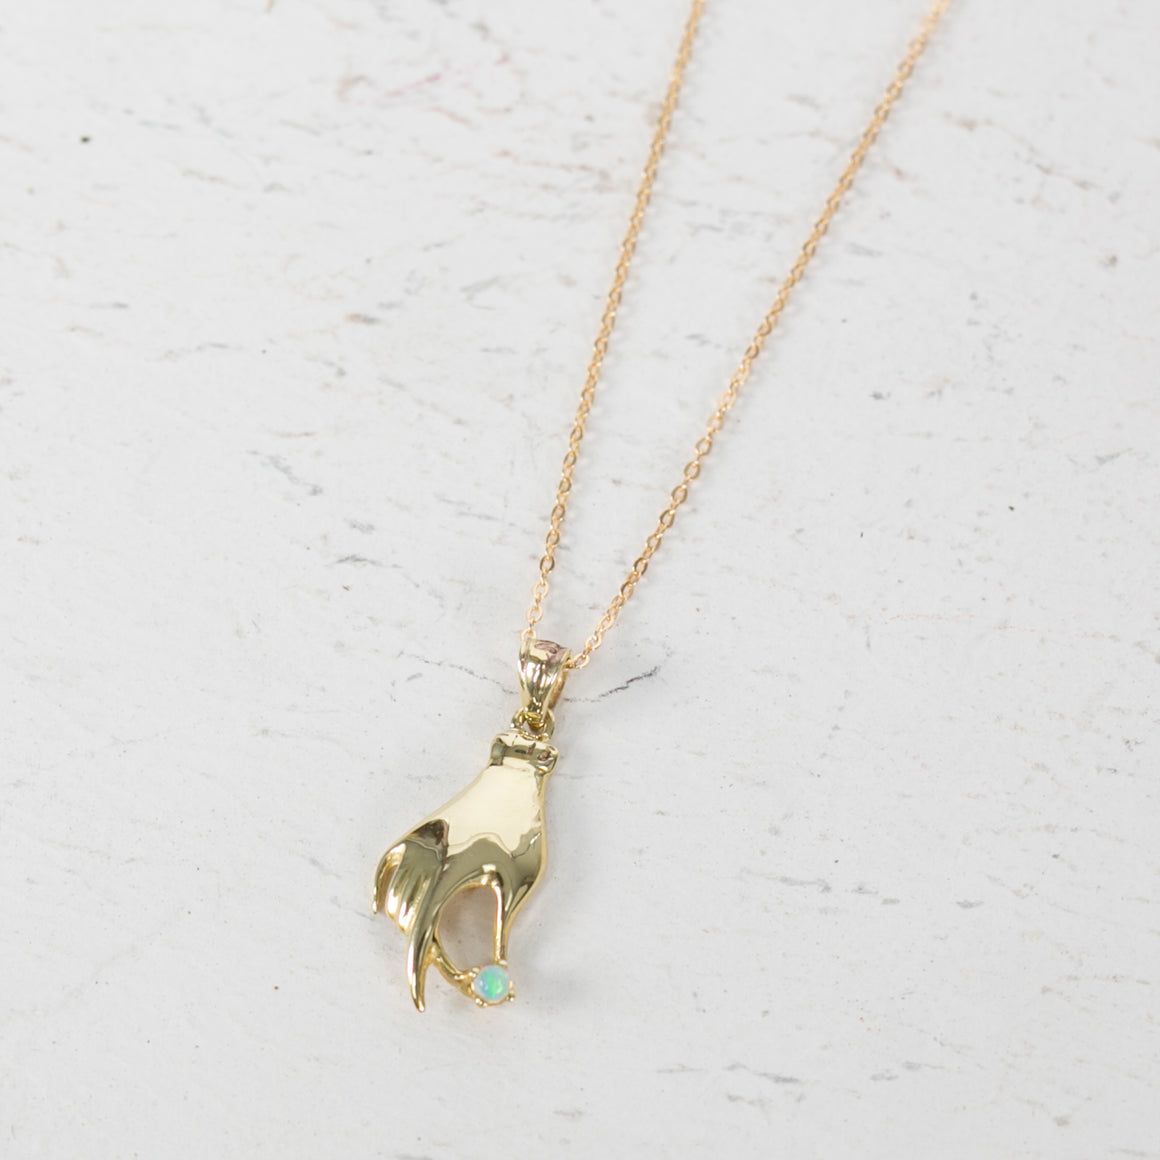 Hand Necklace - individual-medley